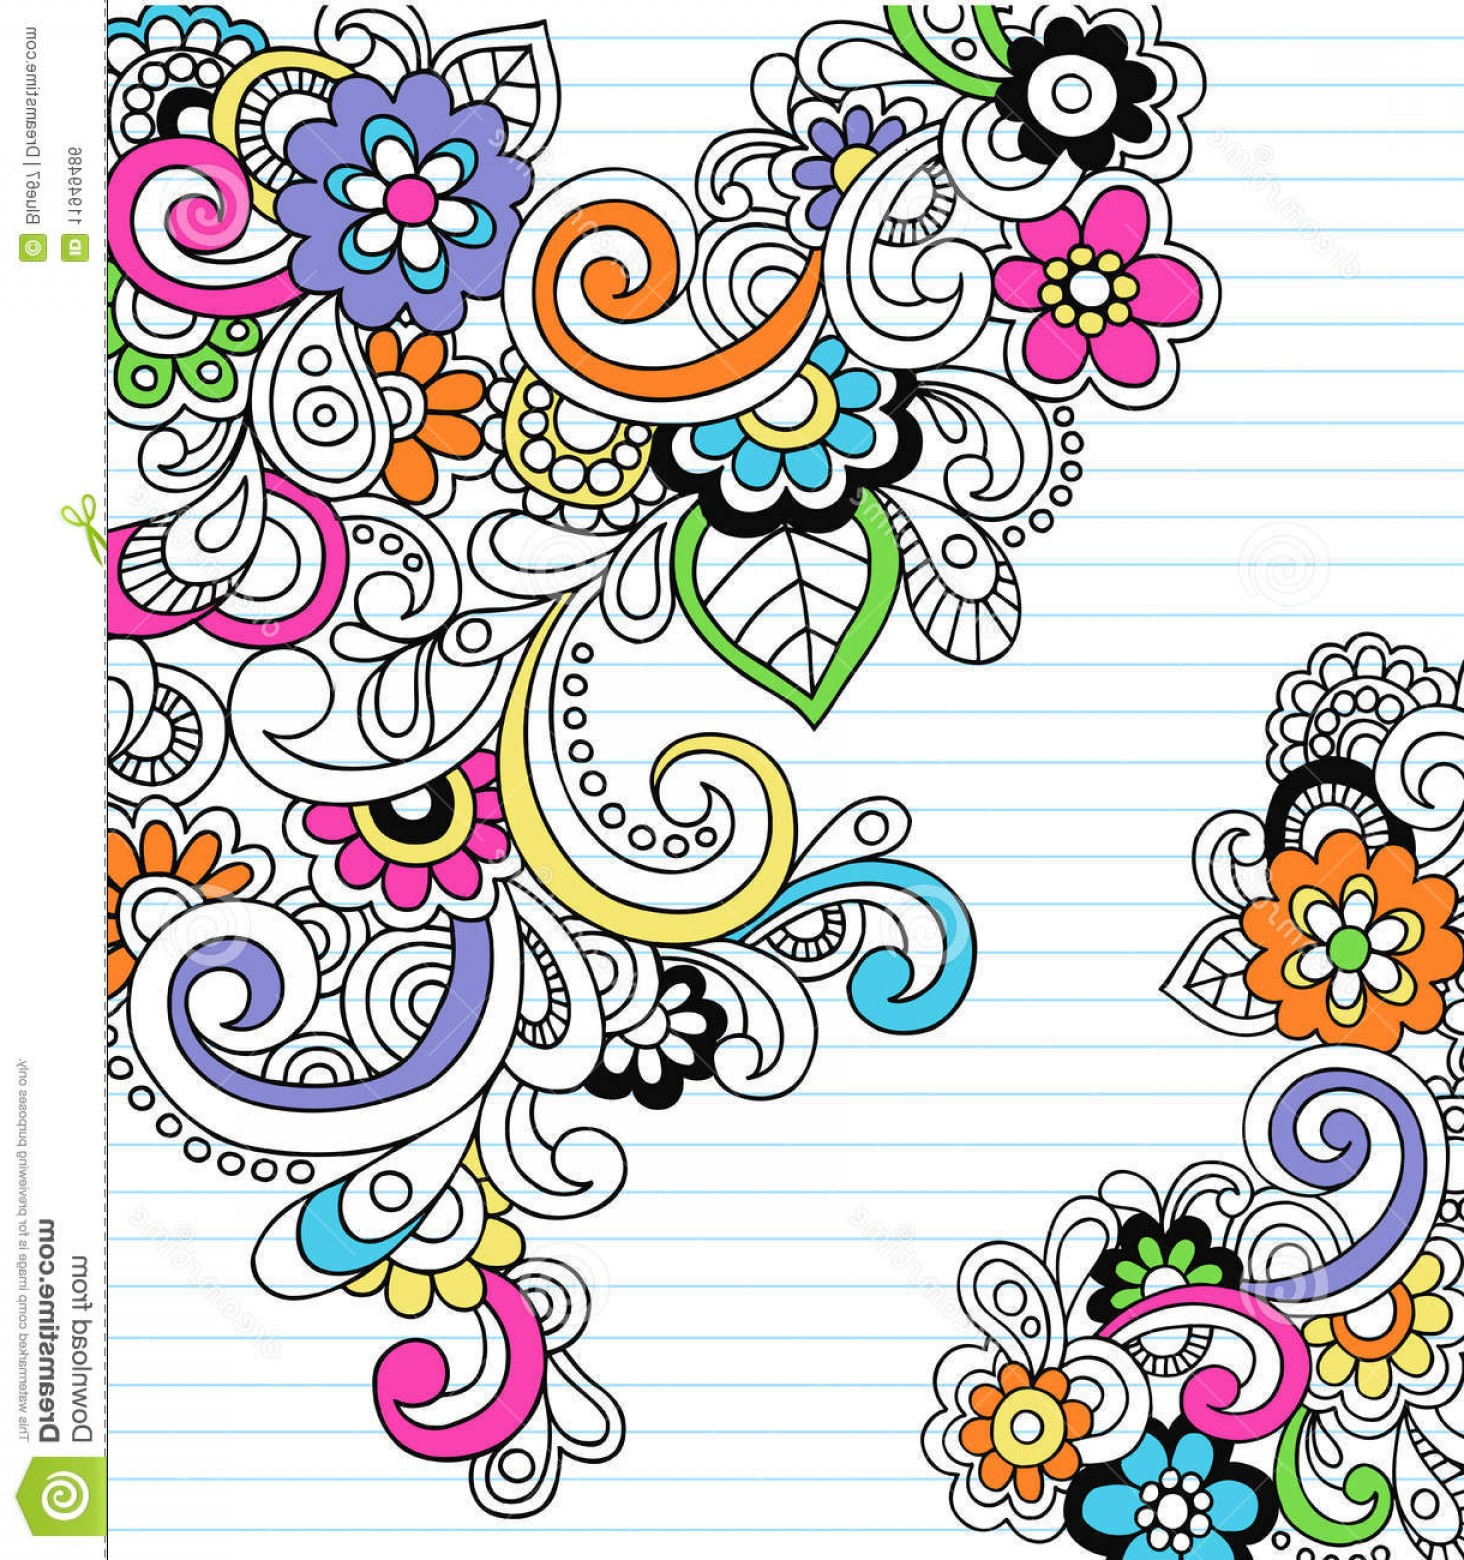 Paisley Swirl Flower Vector: Royalty Free Stock Image Psychedelic Paisley Notebook Doodle Vector Image